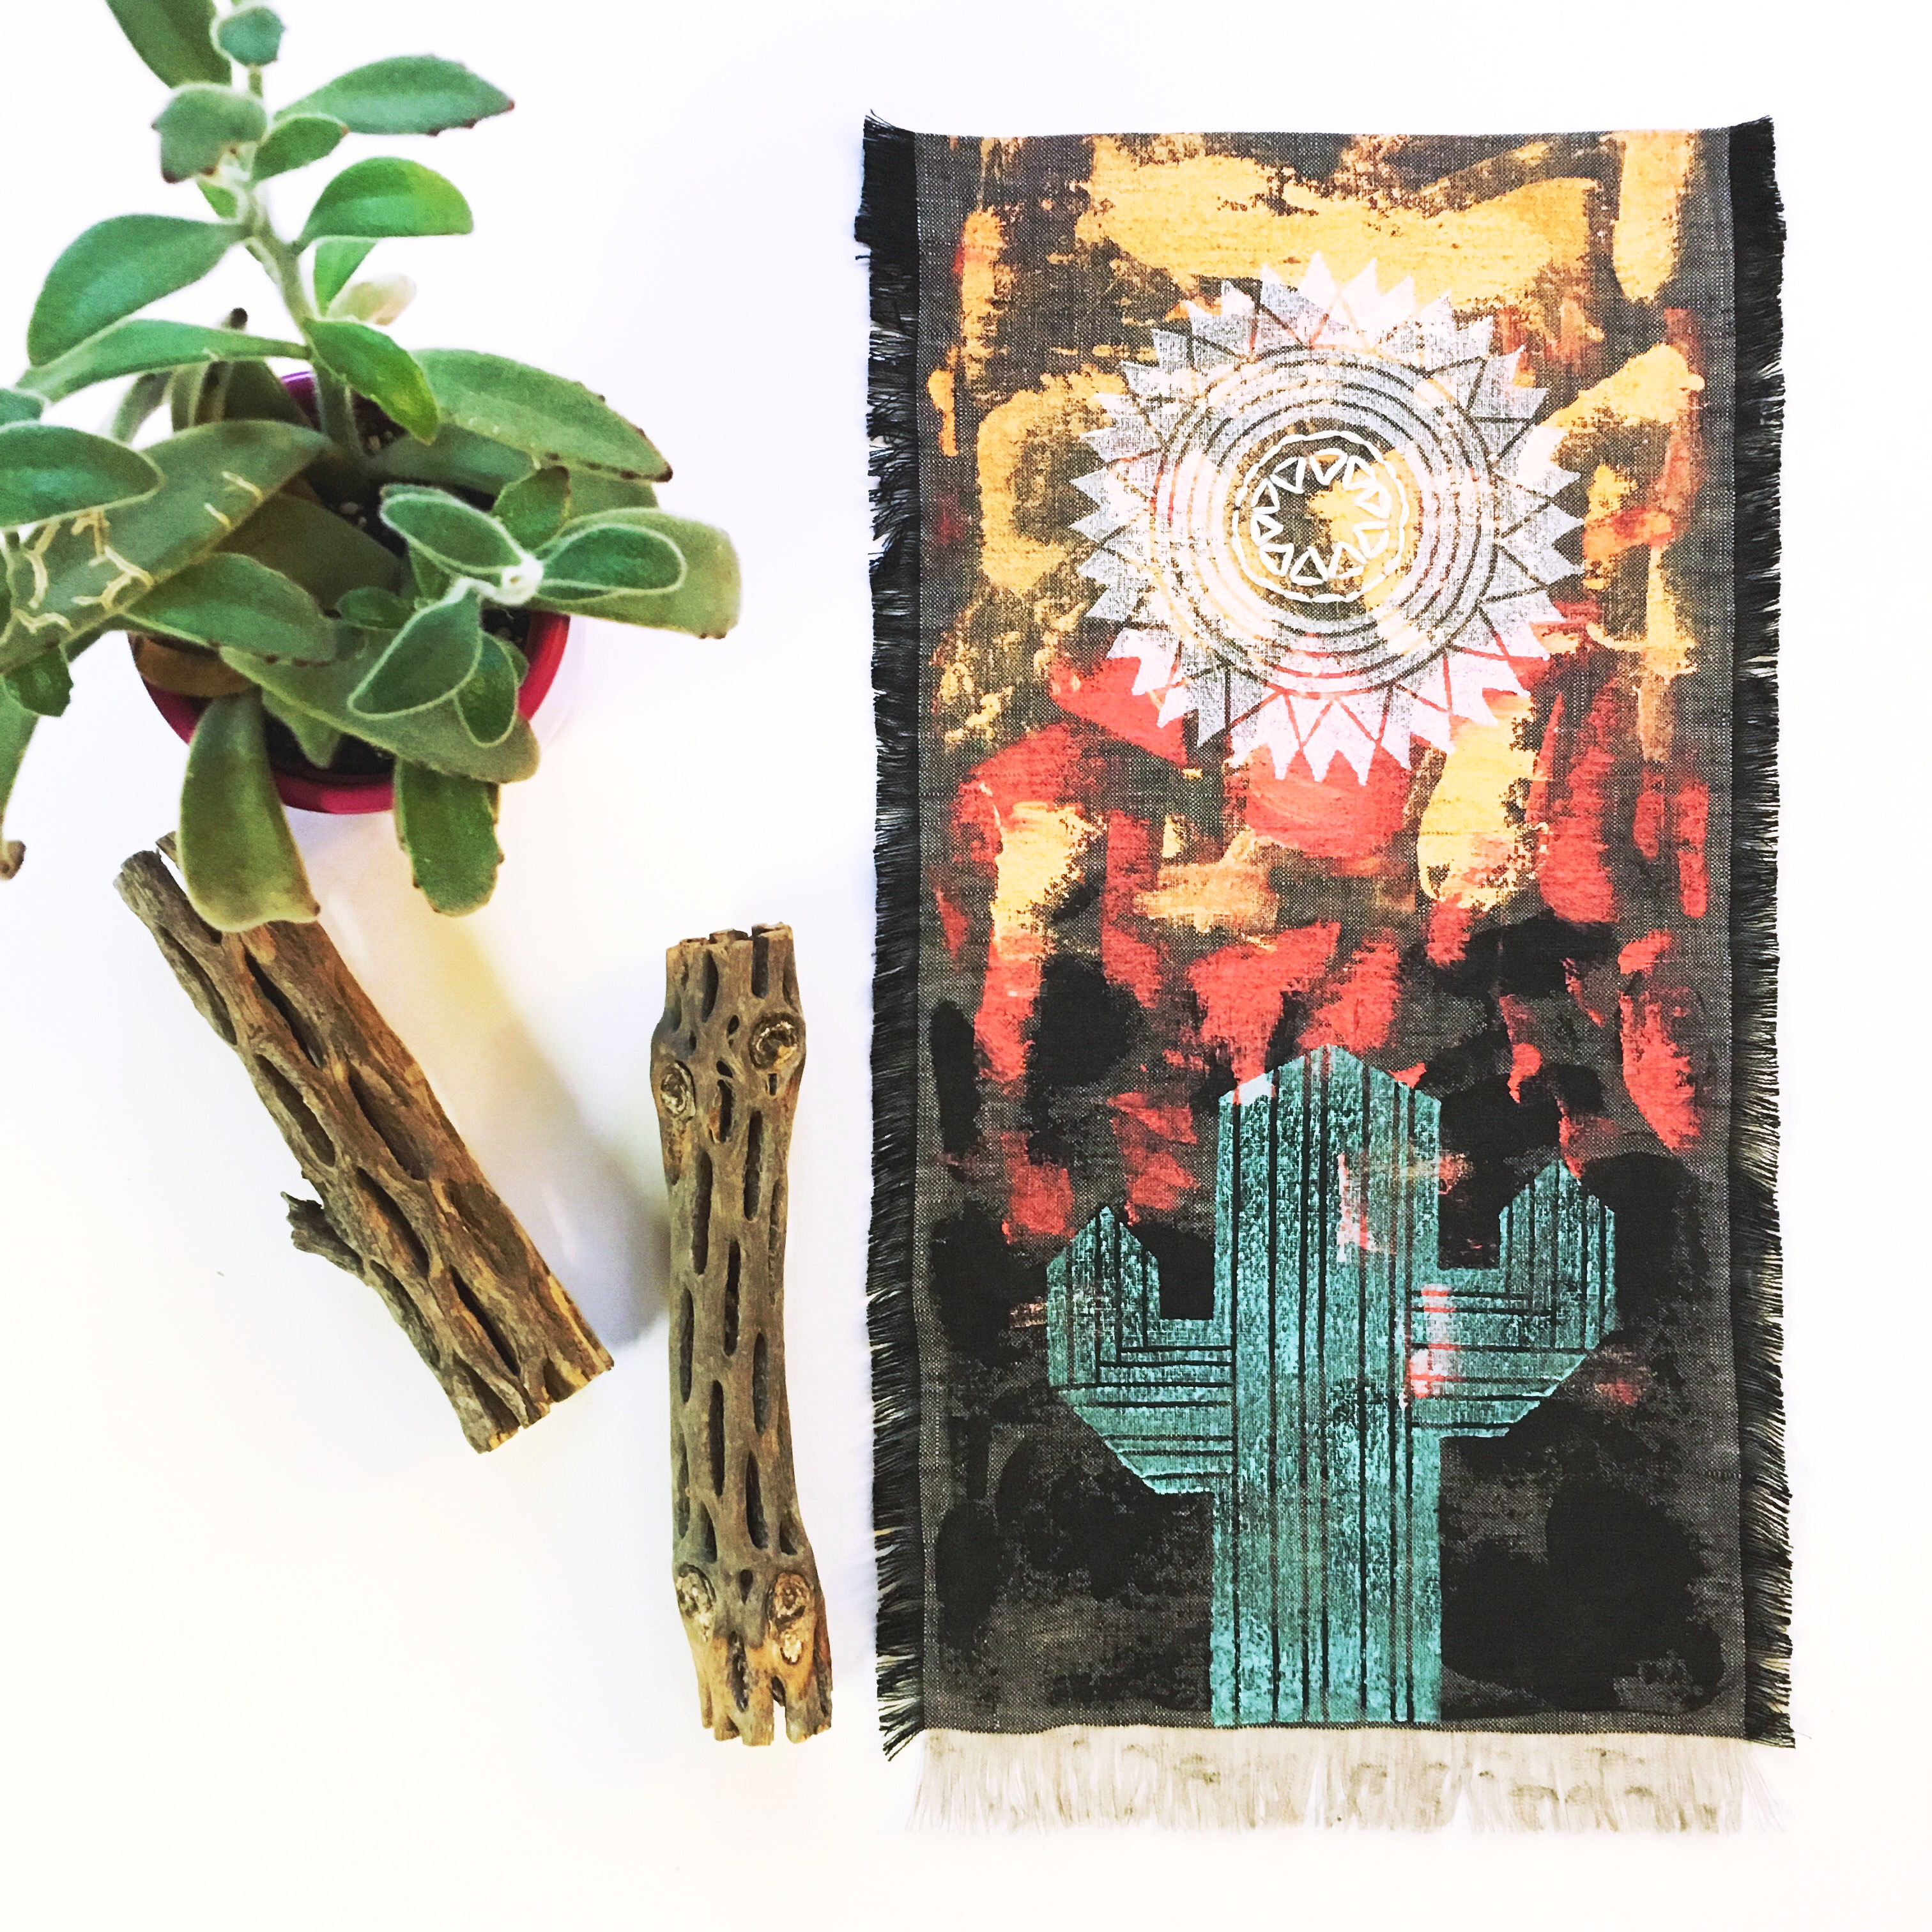 Painted and embroidered wall hanging